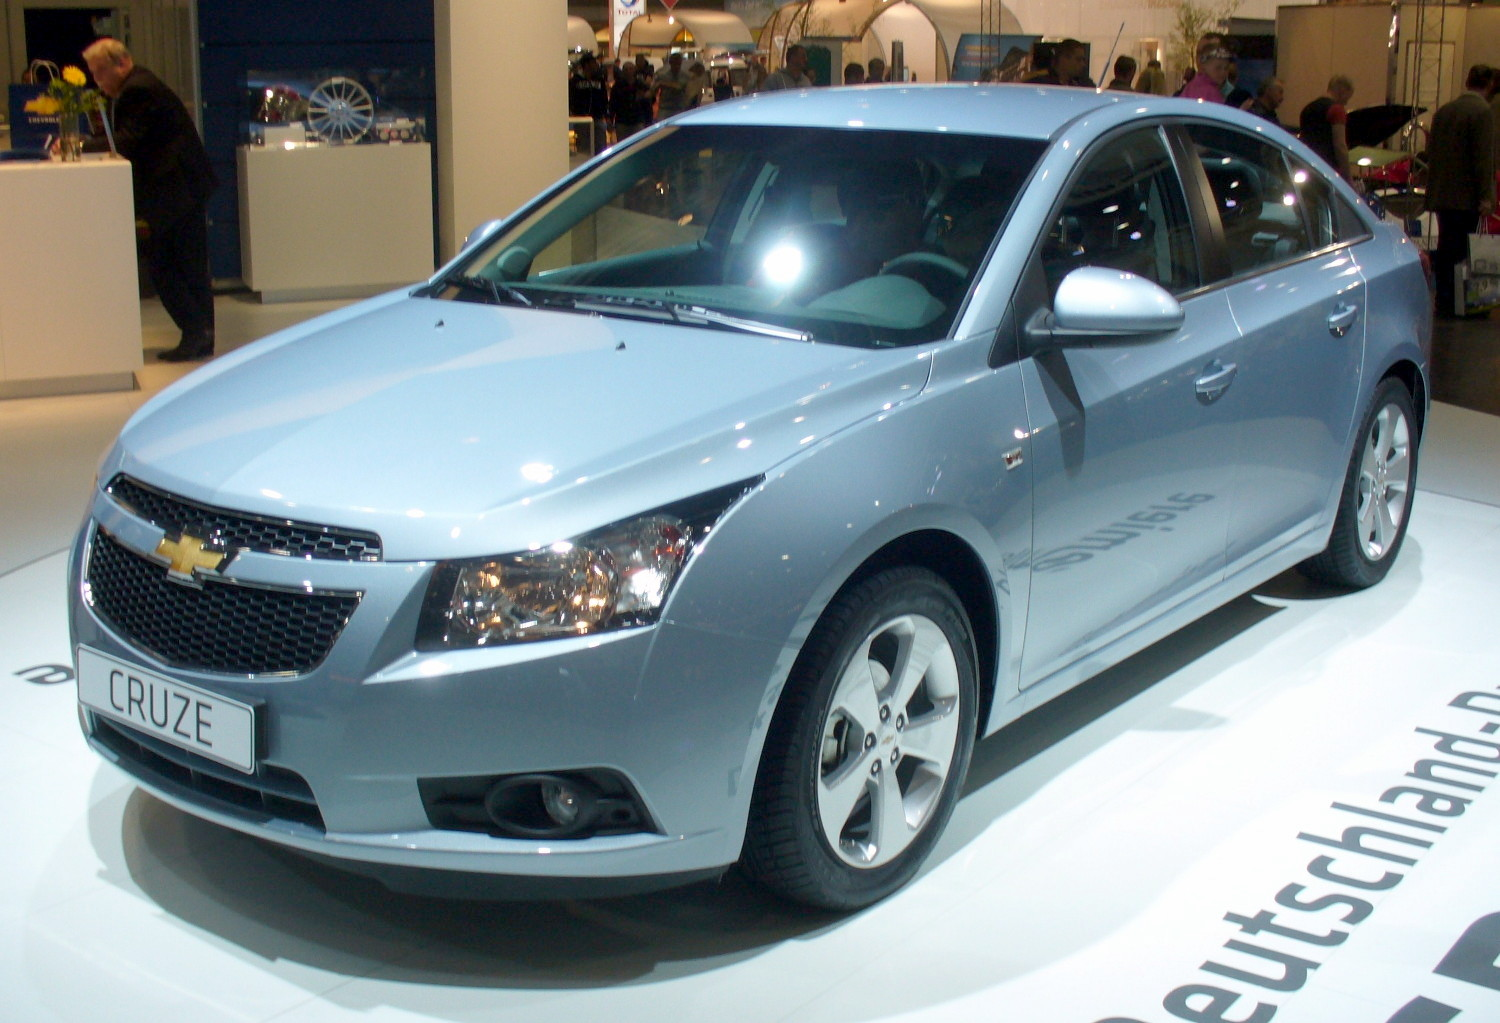 http://aparanjape.files.wordpress.com/2010/02/chevrolet_cruze.jpg